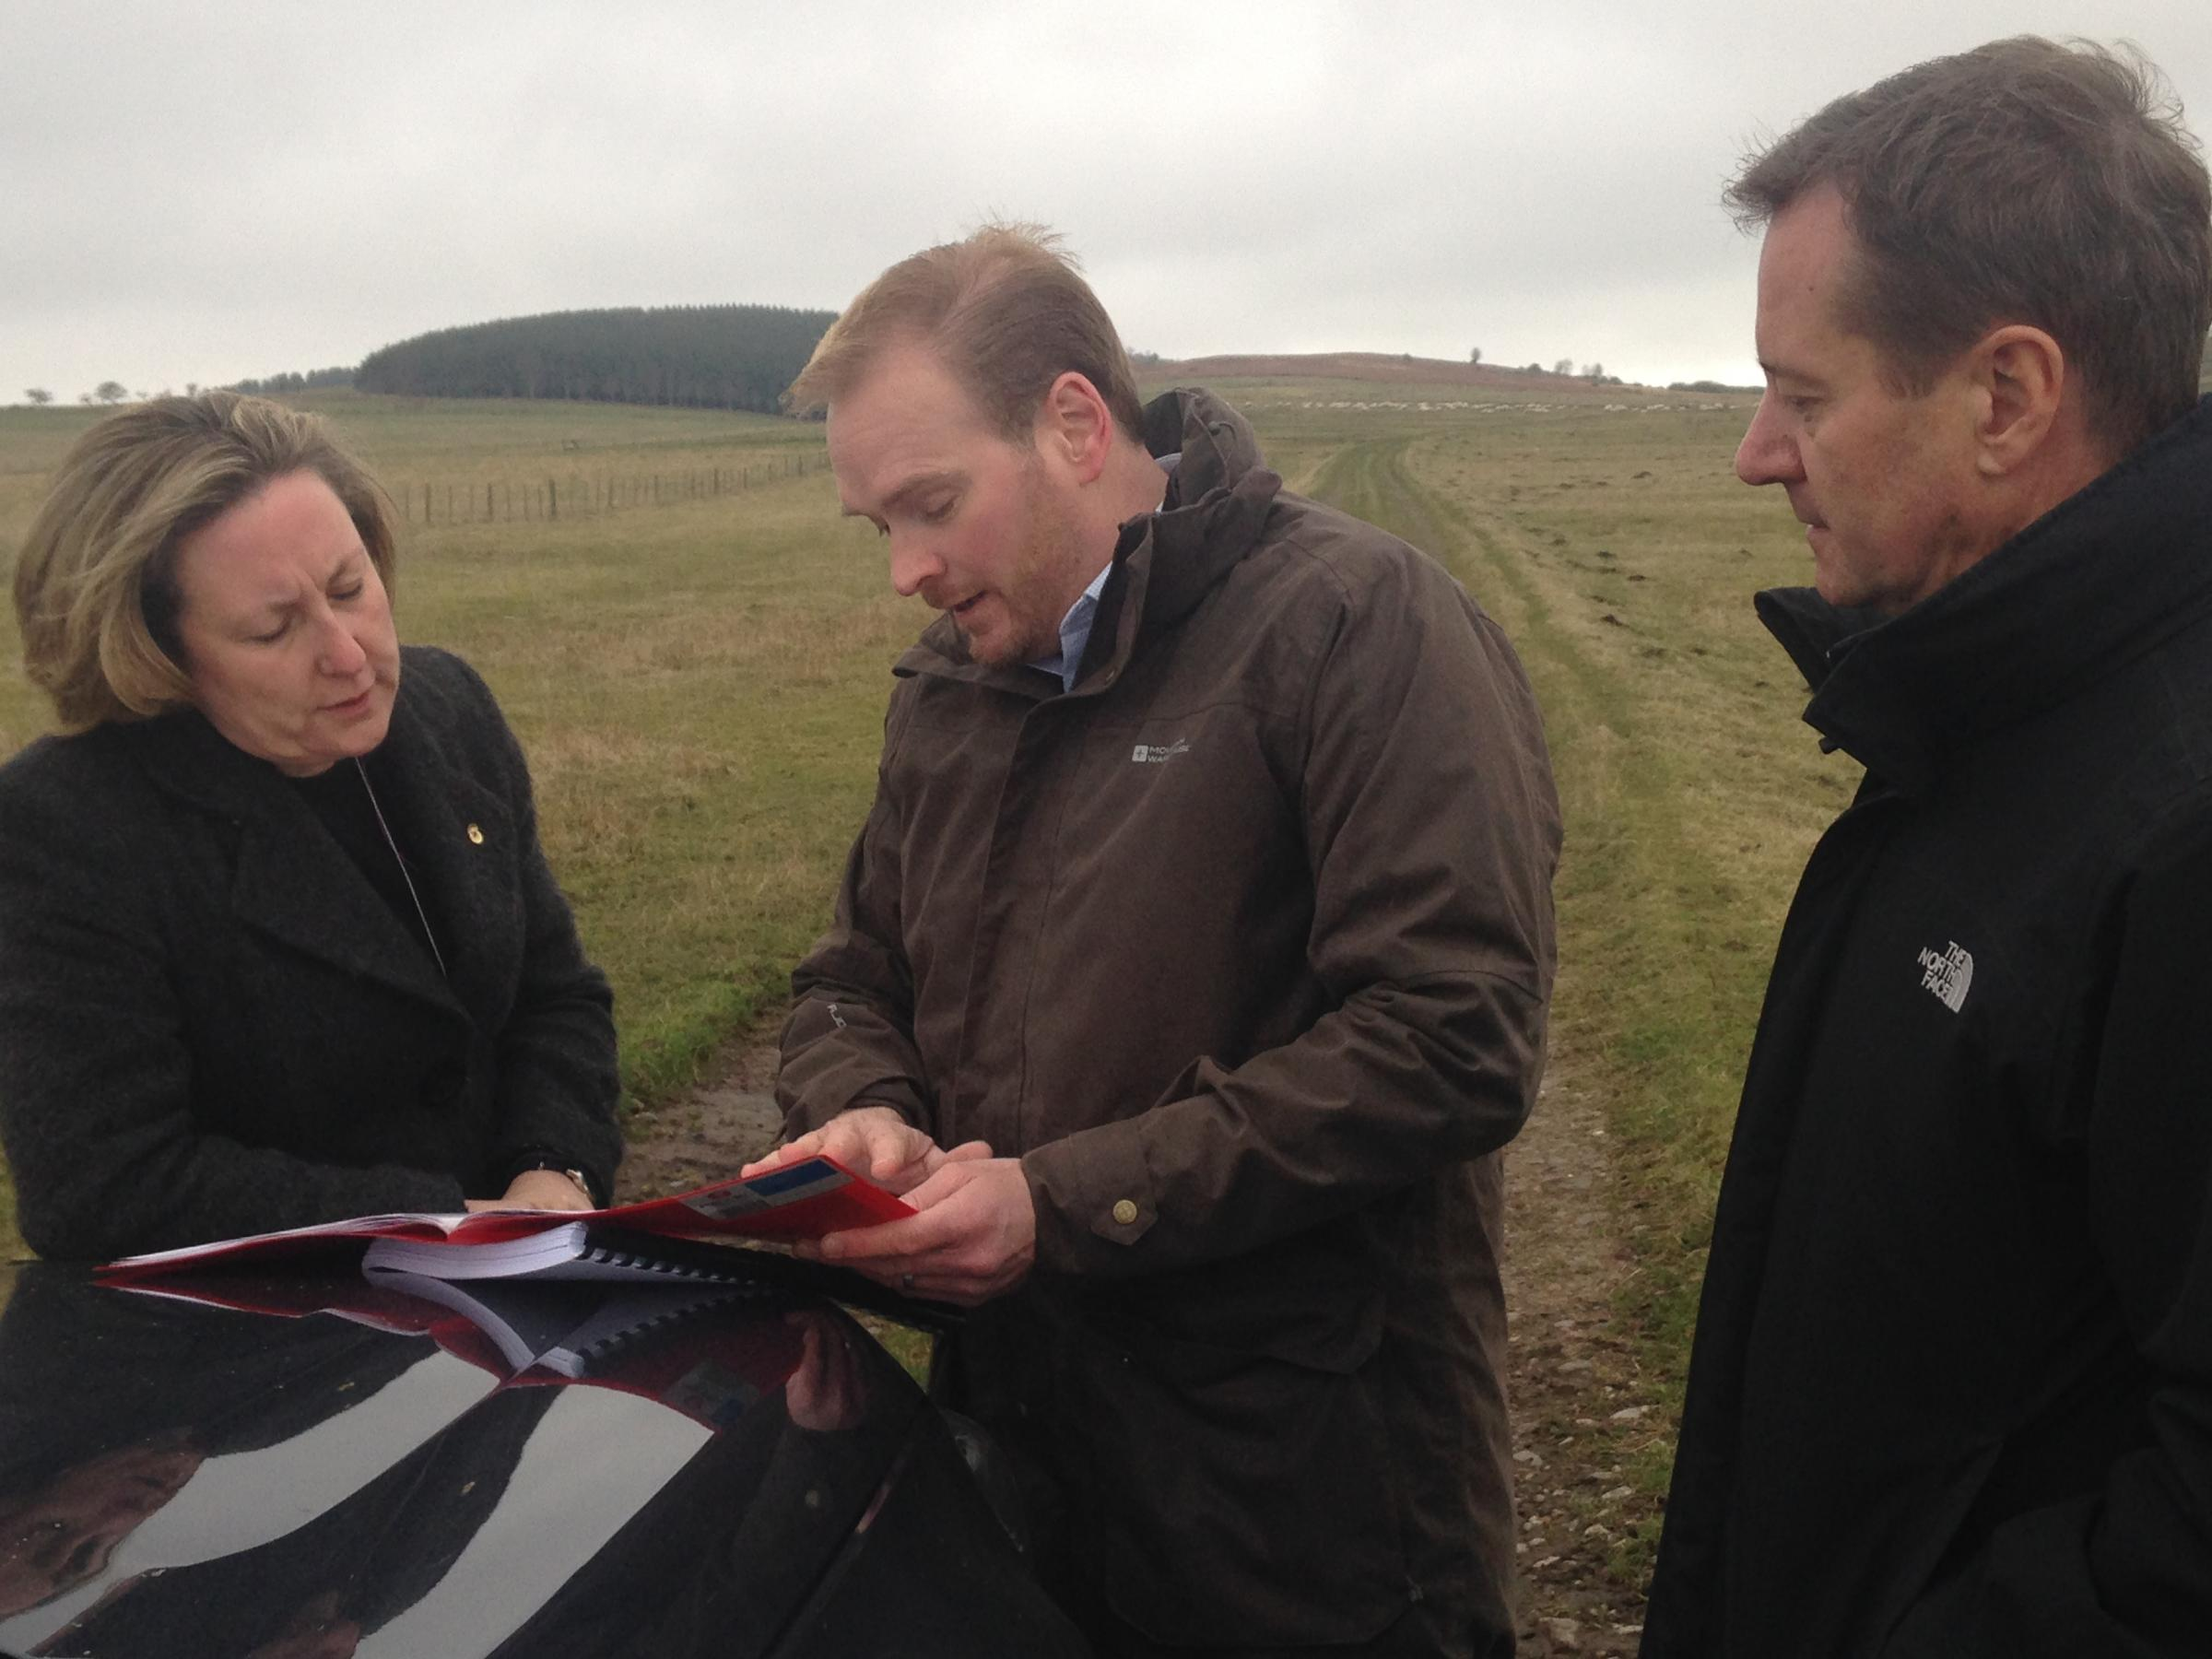 Andy Howard at Doddington site in April this year with Anne-Marie Trevelyan MP and Confor chief executive Stuart Goodall